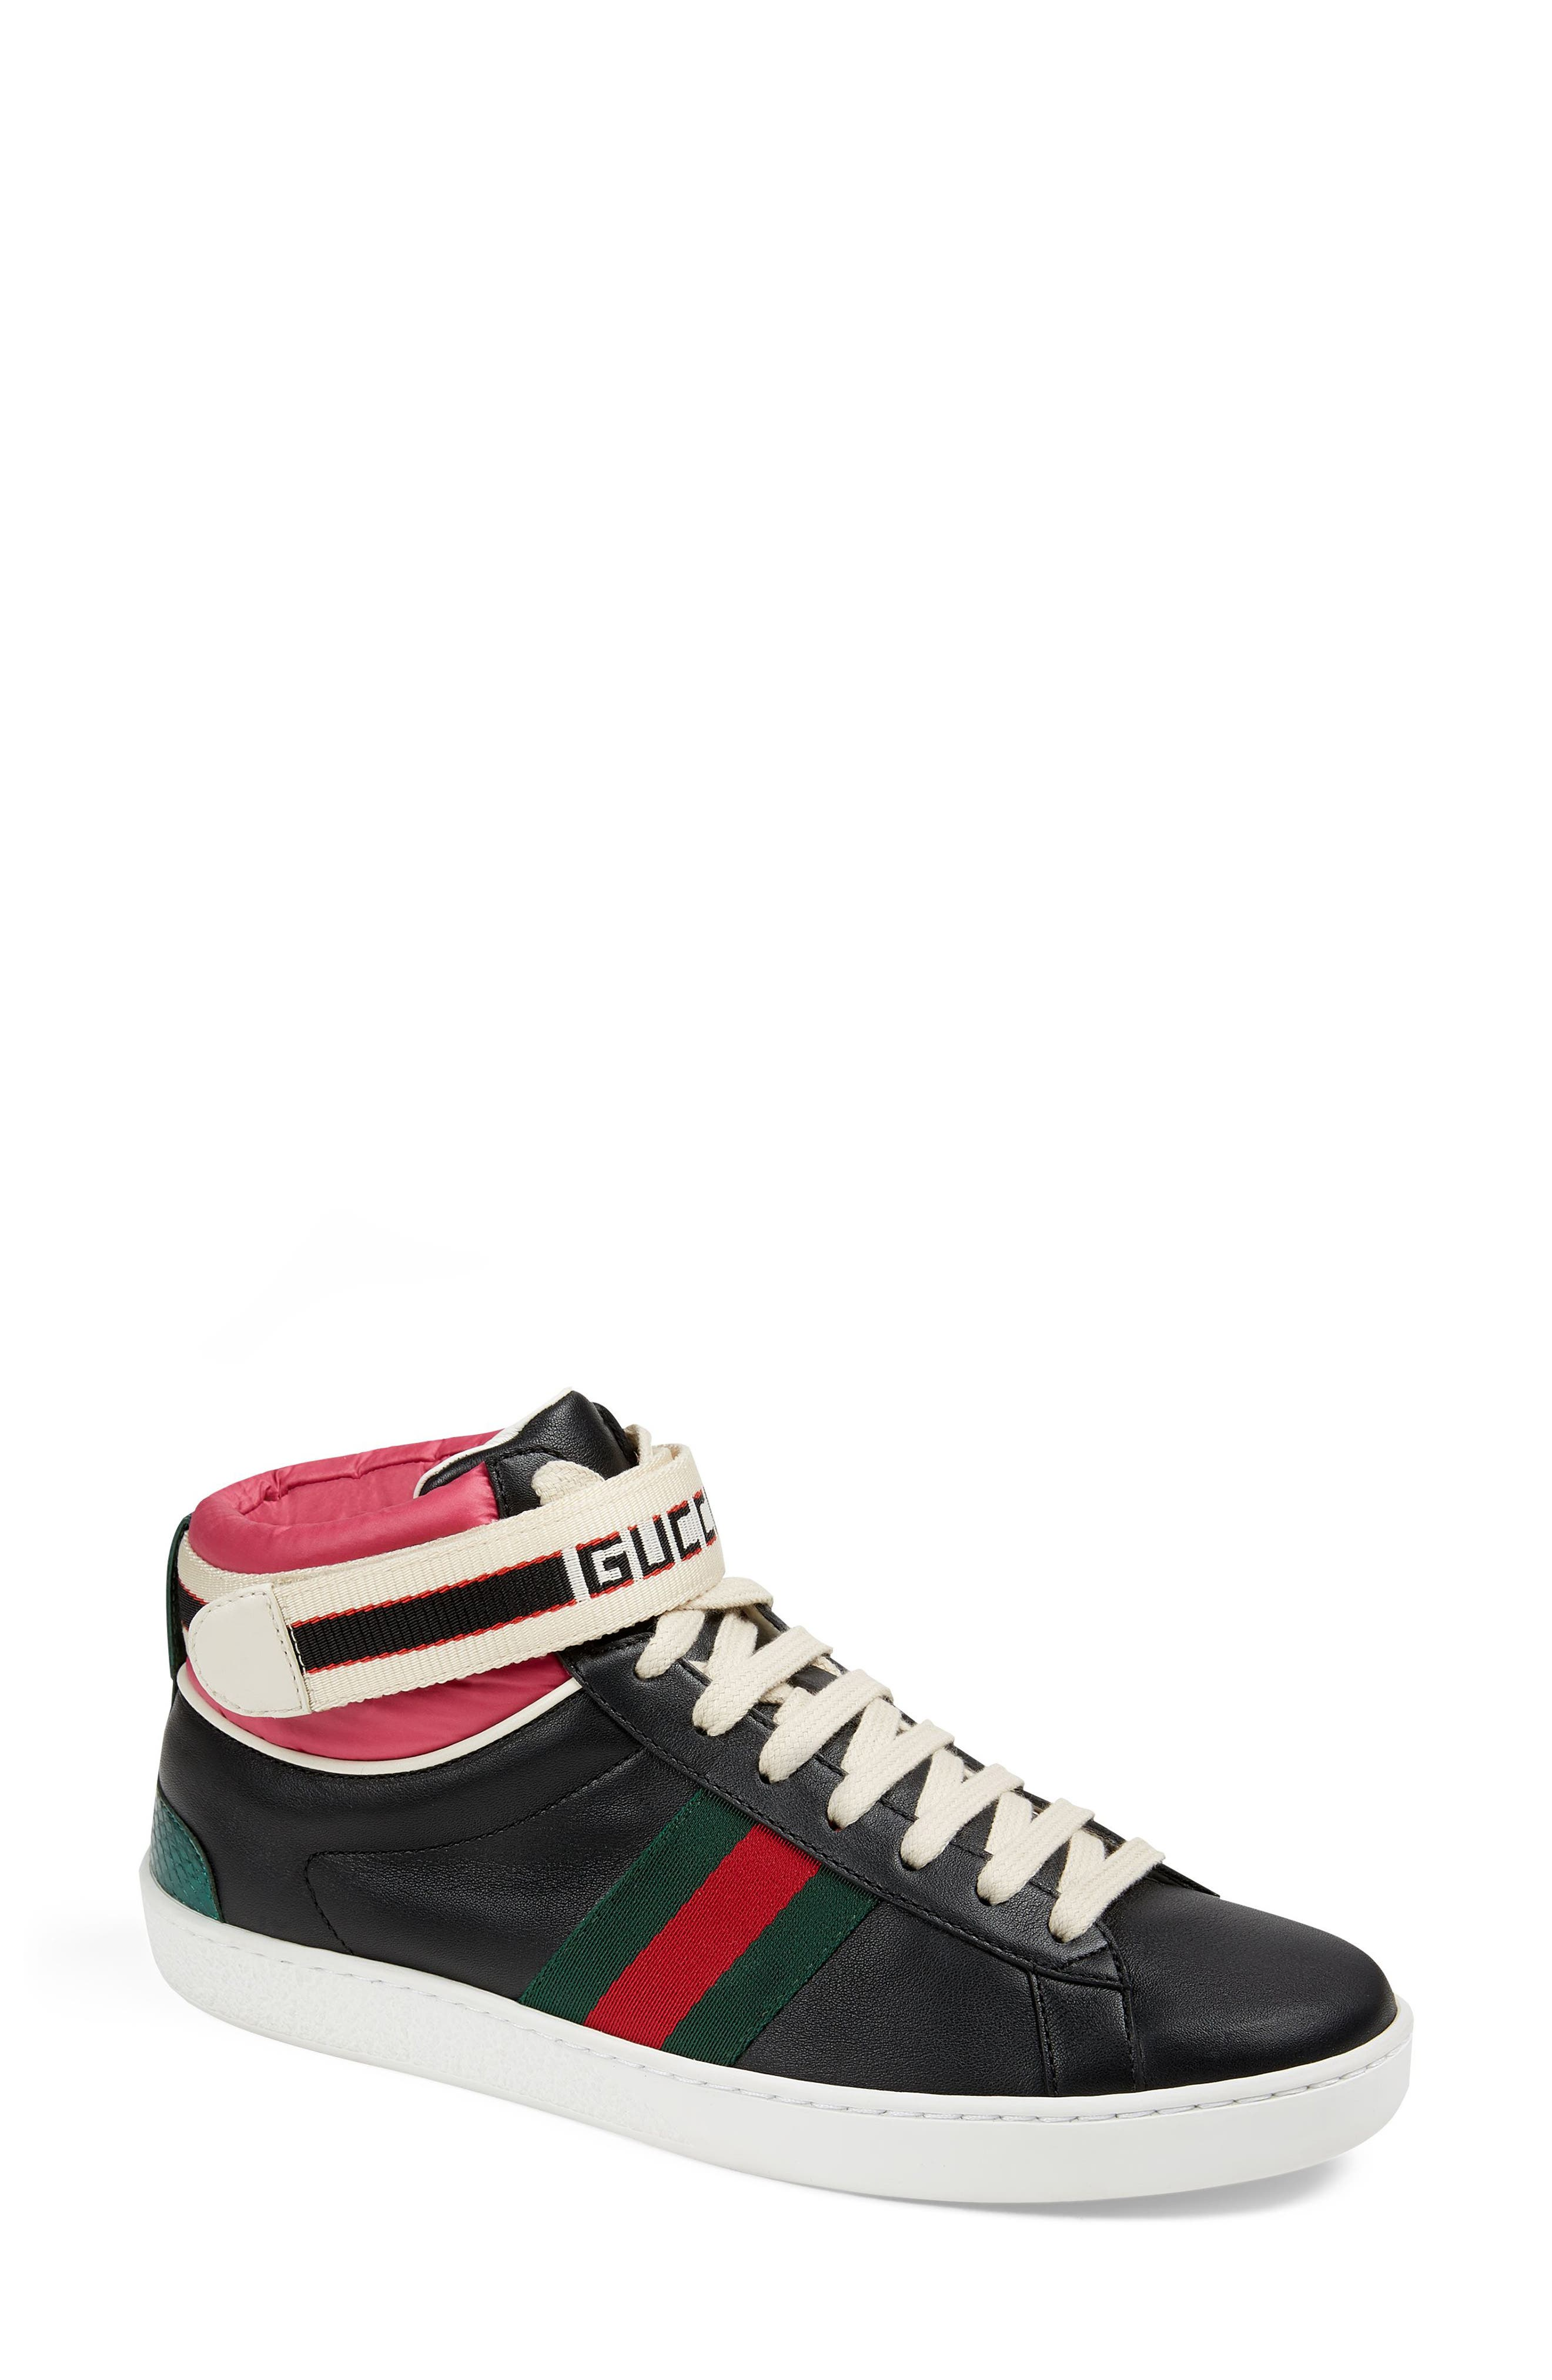 ddd27f4fd Gucci New Ace High Top Sneaker With Genuine Snakeskin Trim